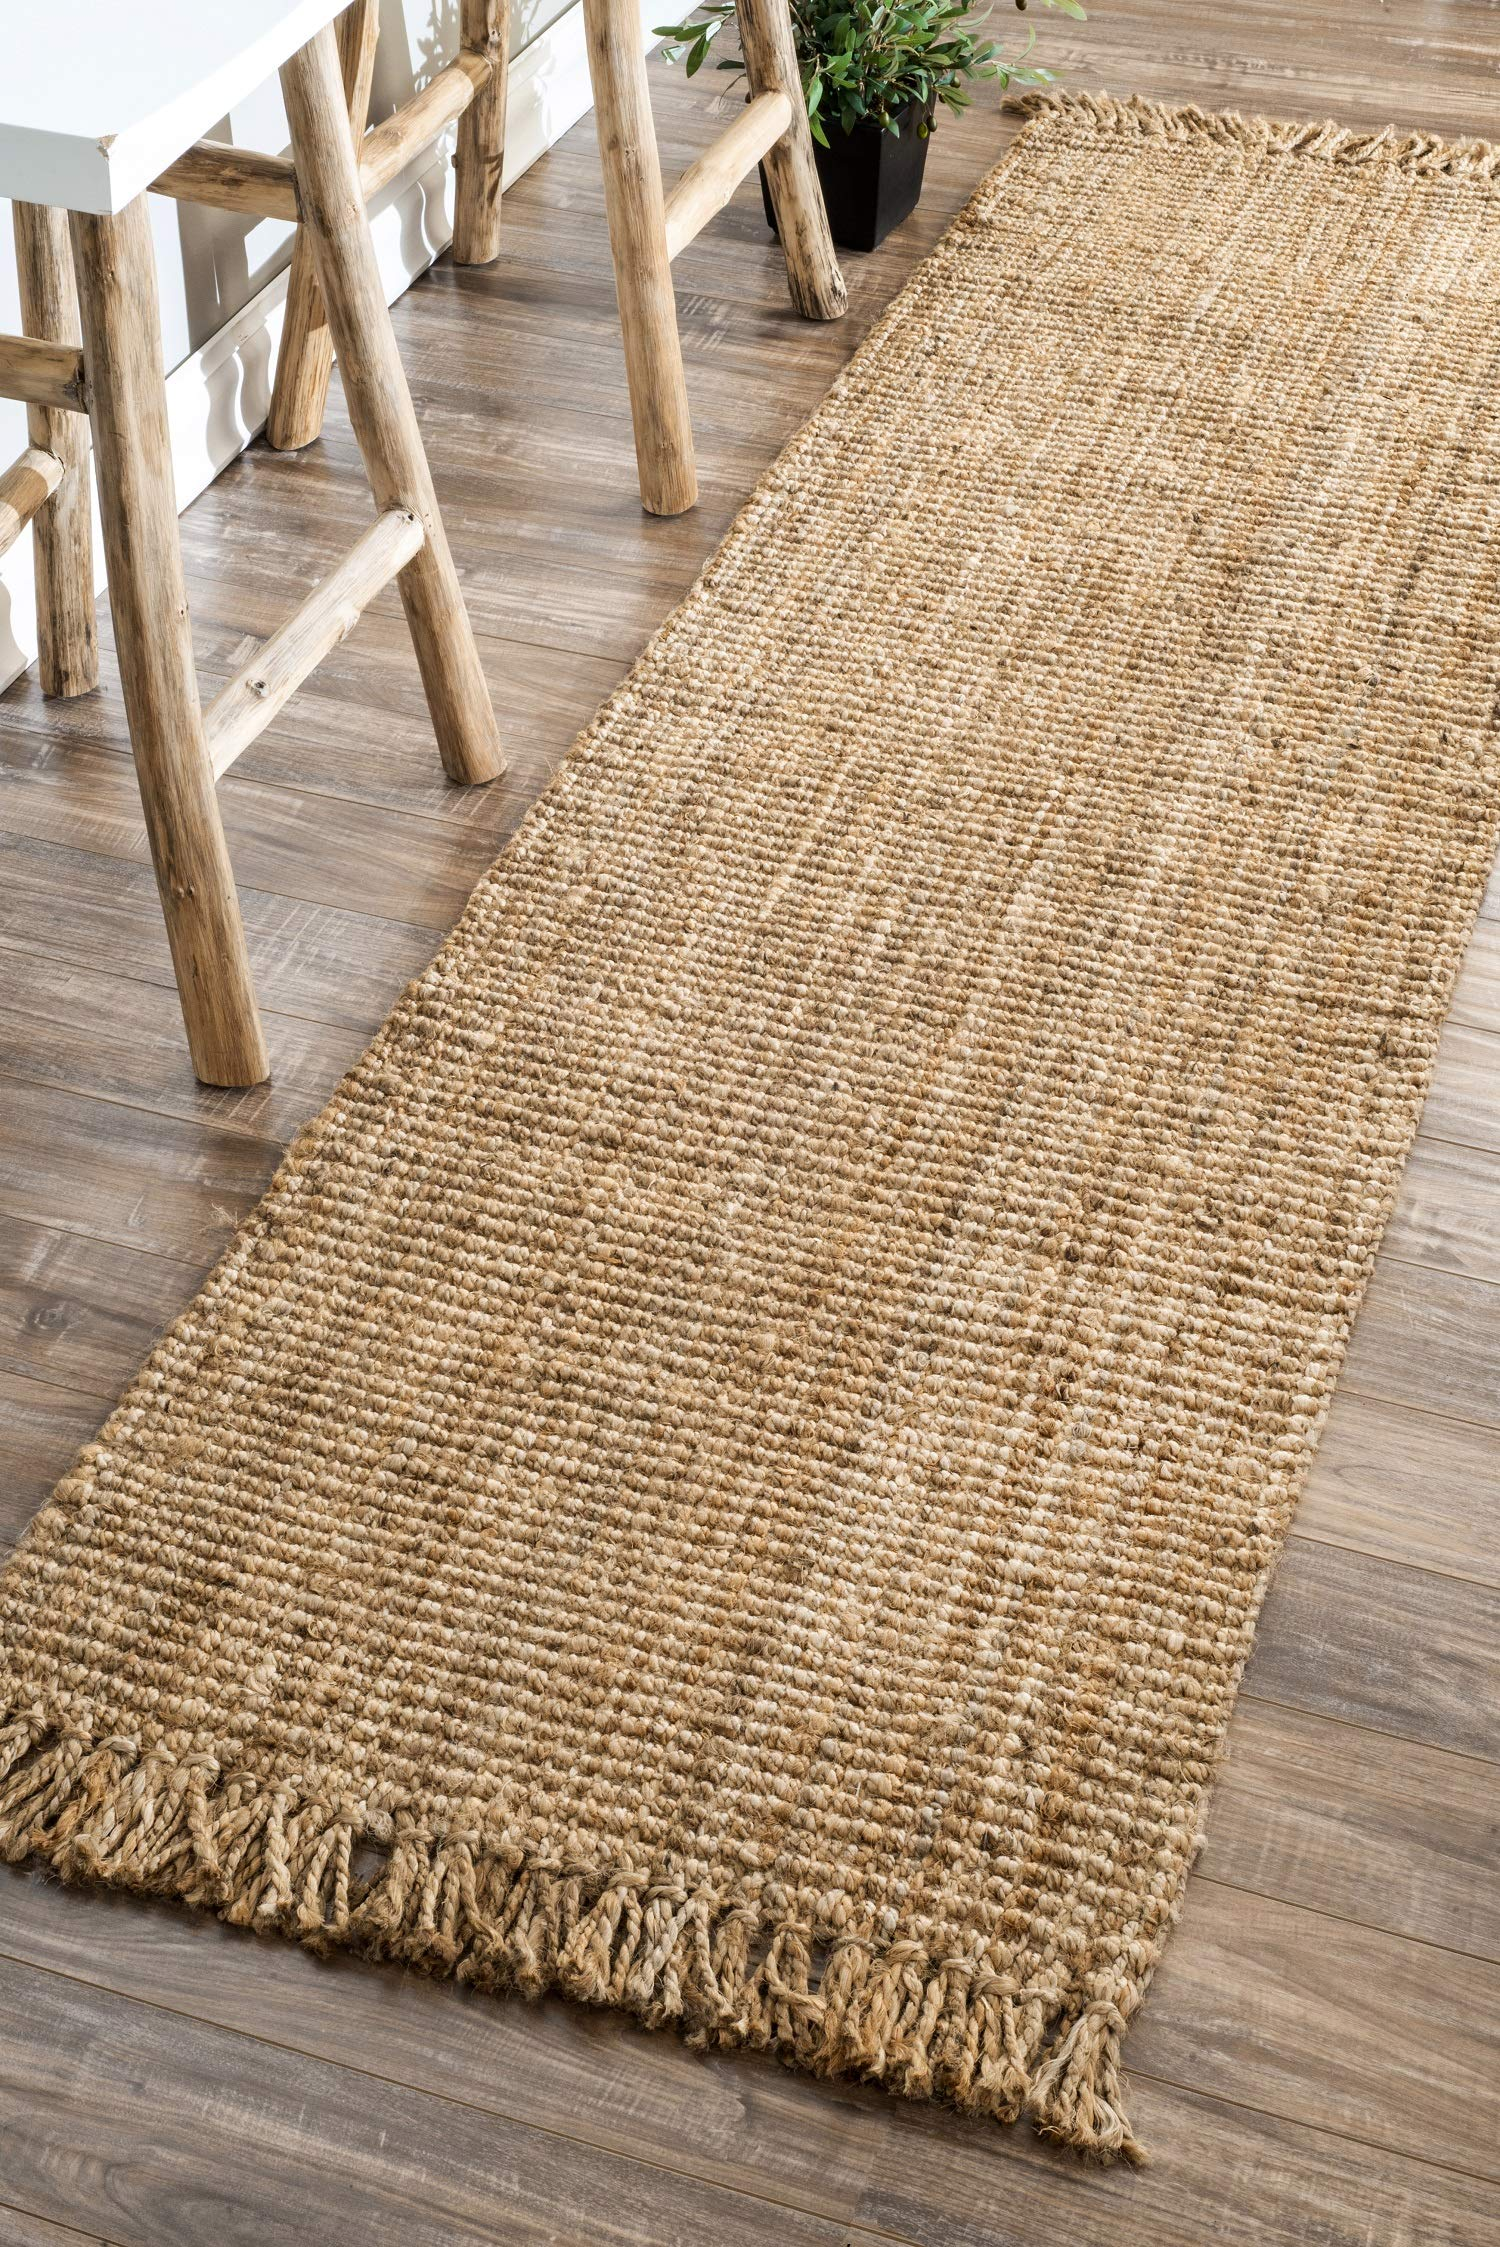 nuLOOM Natura Collection Chunky Loop Jute Runner Rug, 2' 6'' x 8', Natural by nuLOOM